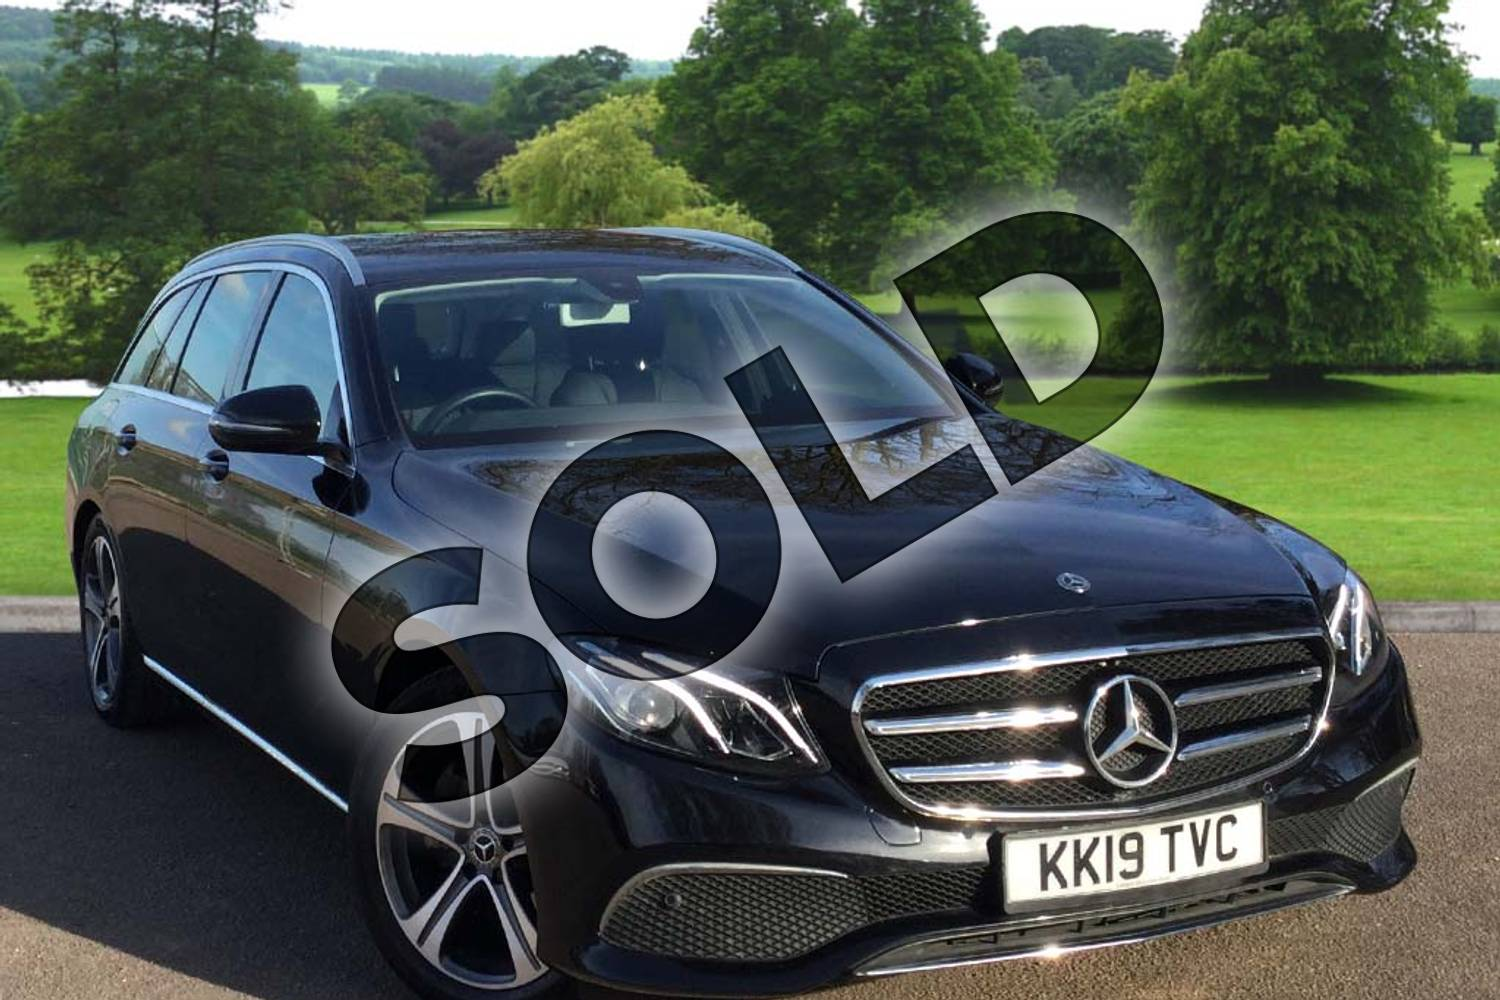 2019 Mercedes-Benz E Class Diesel Estate E220d SE 5dr 9G-Tronic in obsidian black metallic at Mercedes-Benz of Grimsby